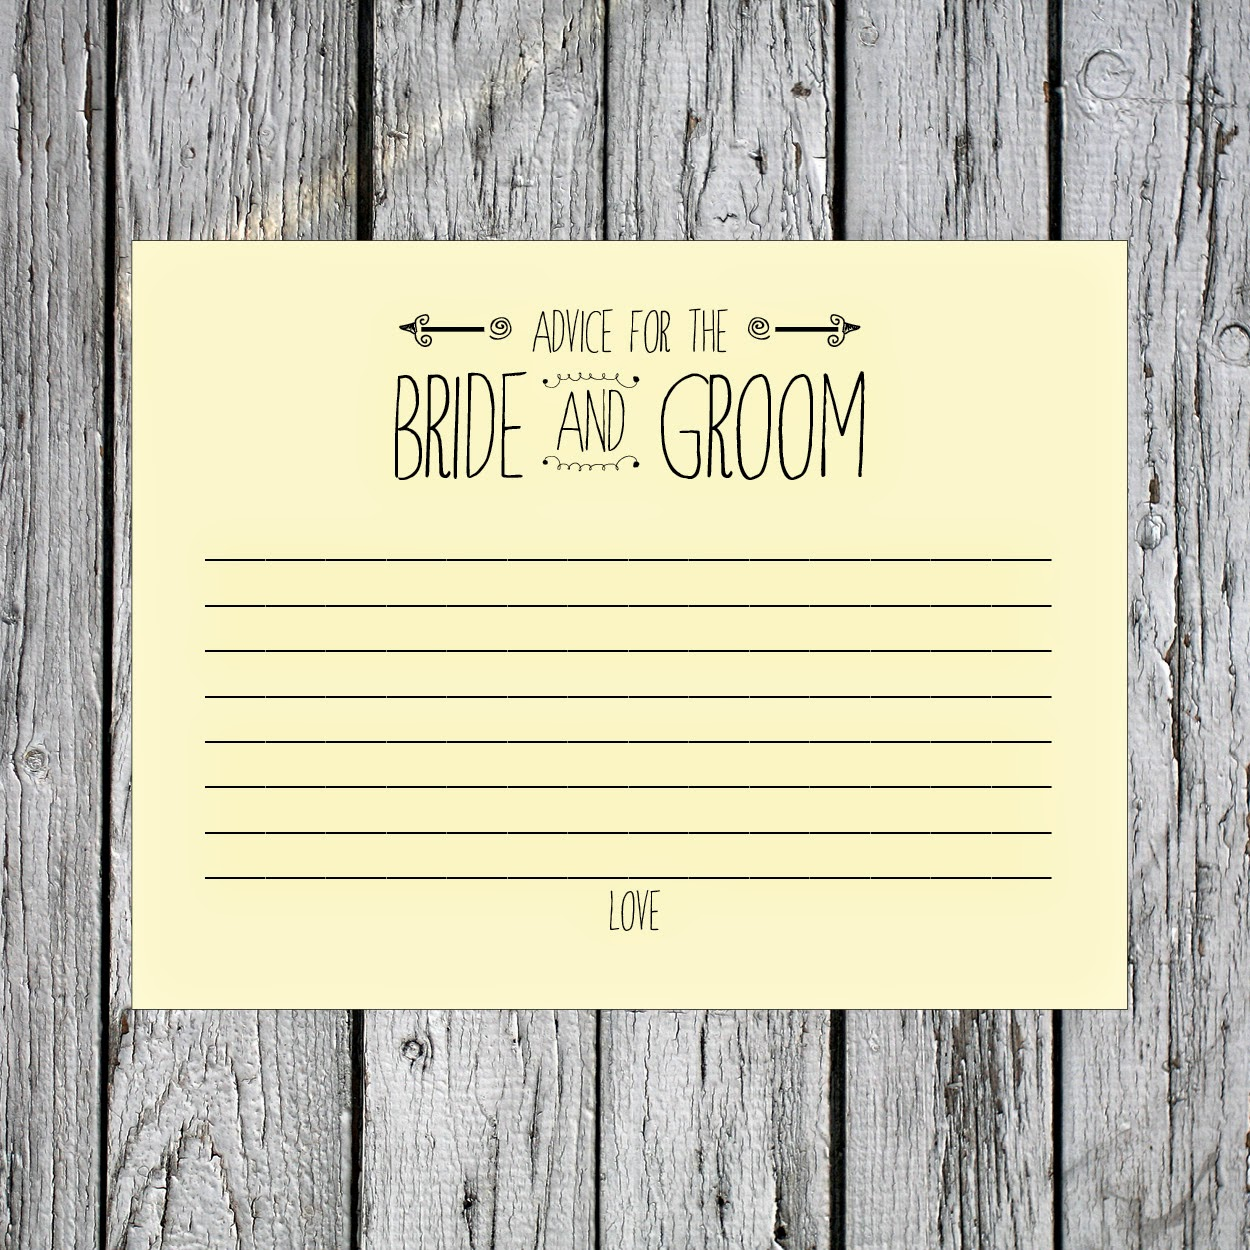 Advice For The Bride And Groom Cards At Your Wedding By Placing A Box With Next To Guest Book So Guests Can Fill Out Card When They Sign